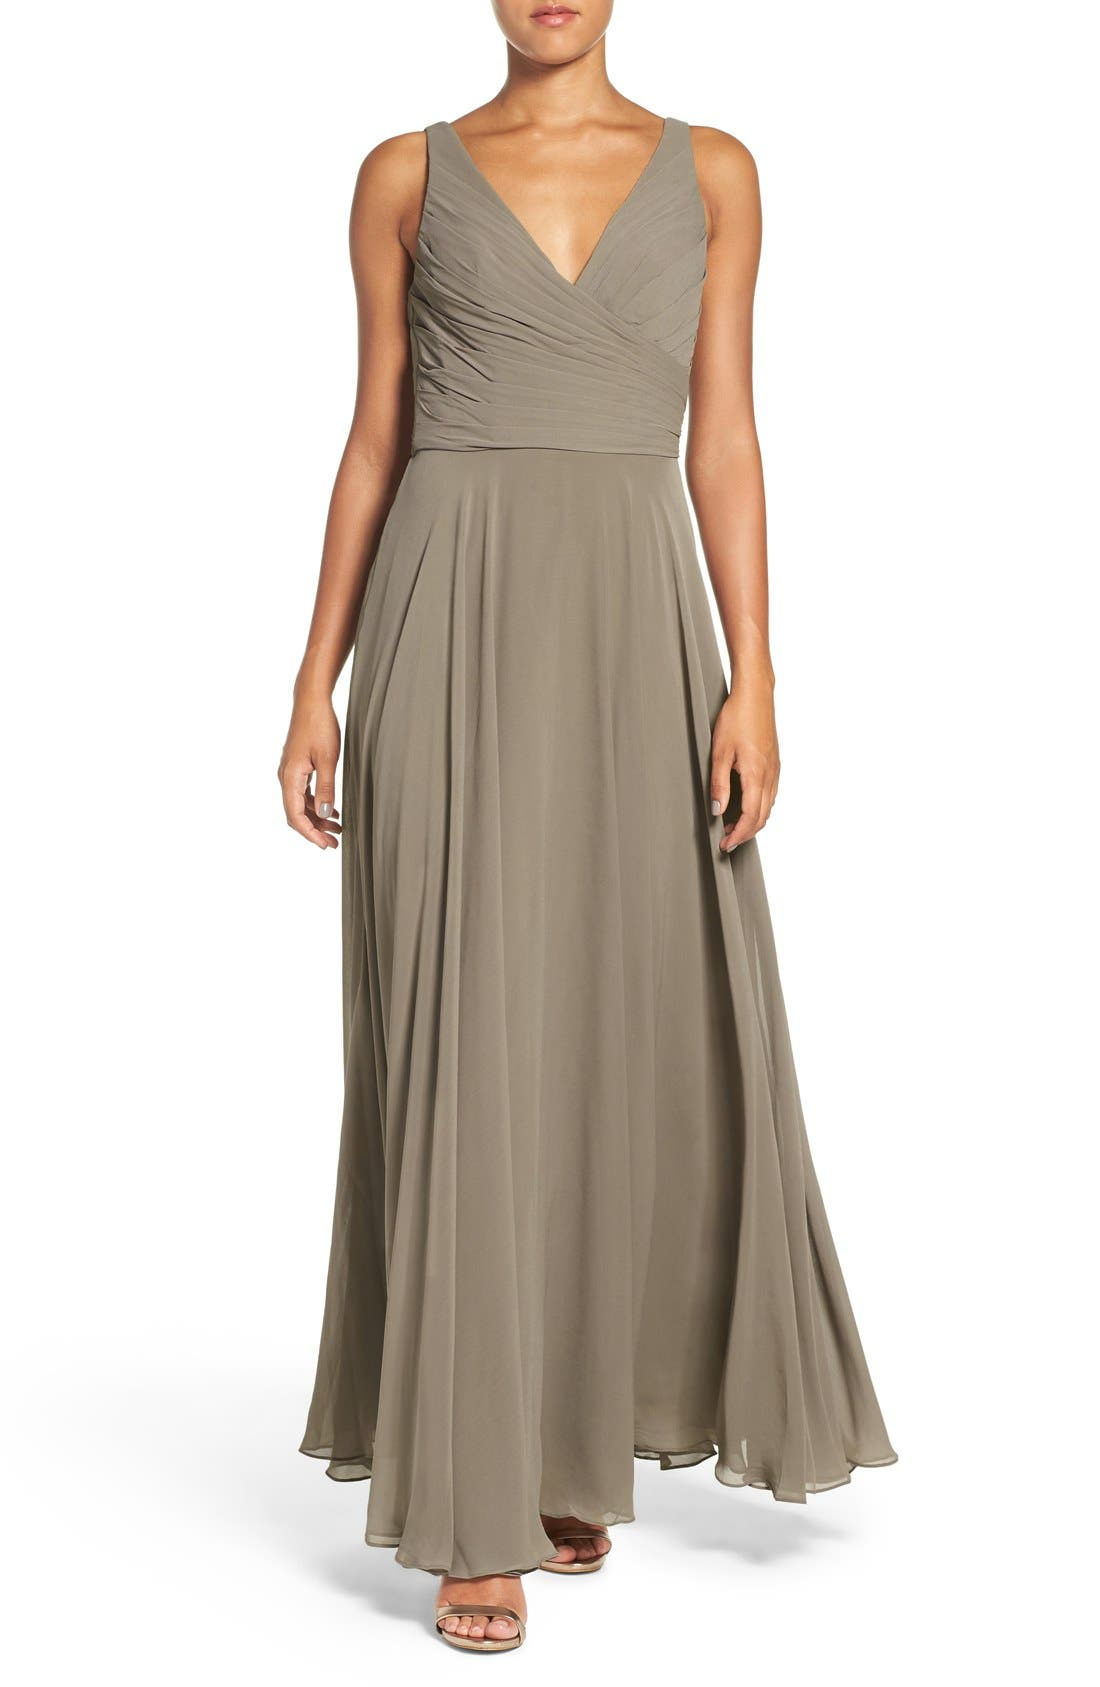 Karen V-Neck A-Line Chiffon Gown,                             Main thumbnail 1, color,                             020